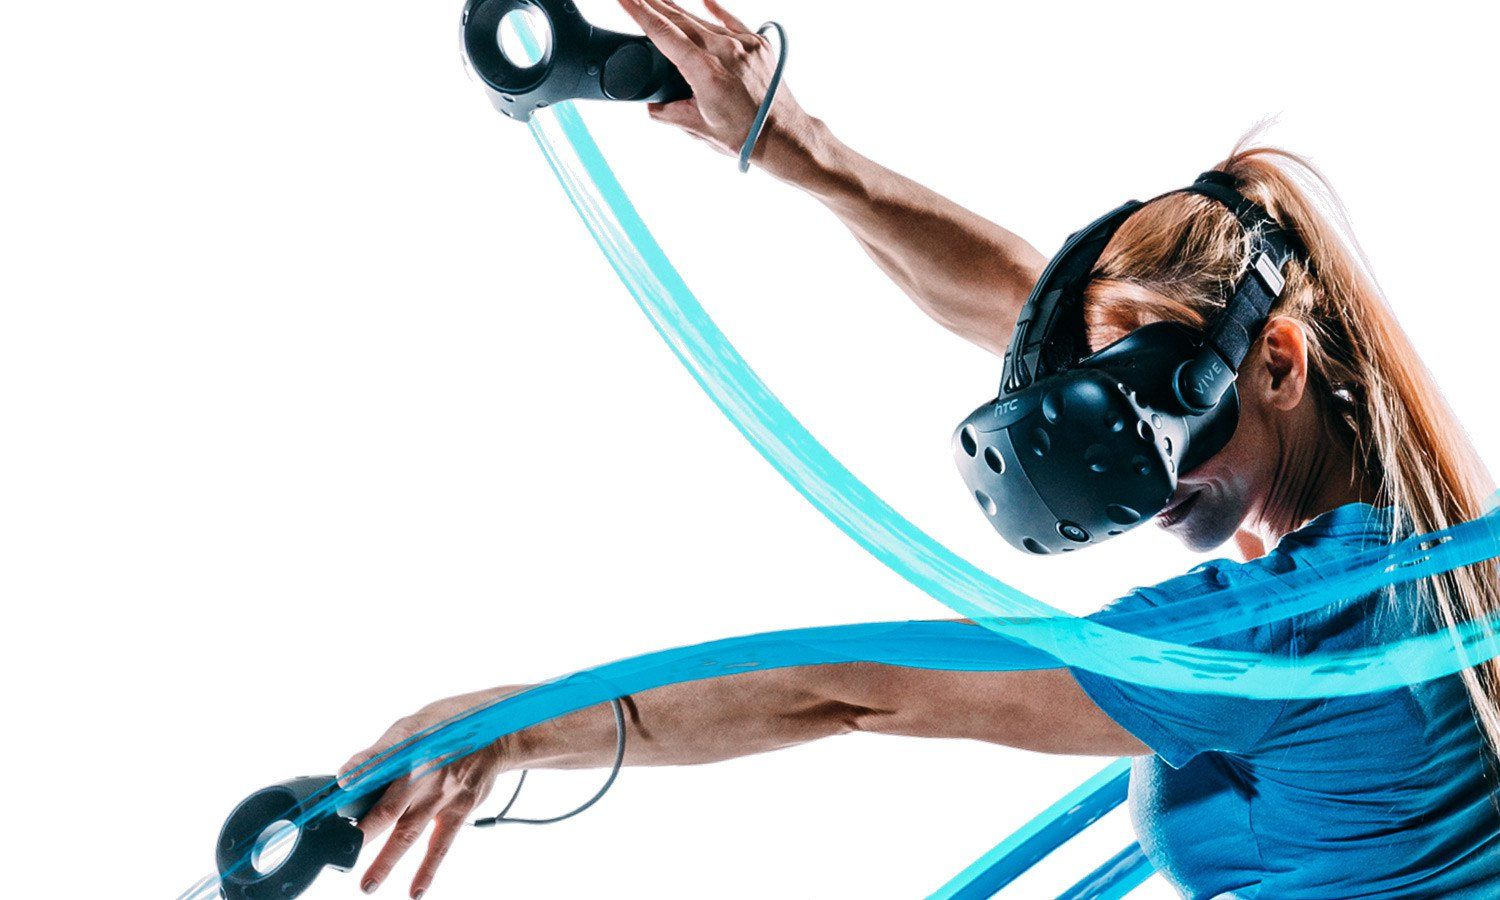 Pin by Don Pham on VR Ready player one, Htc vive, Vr display